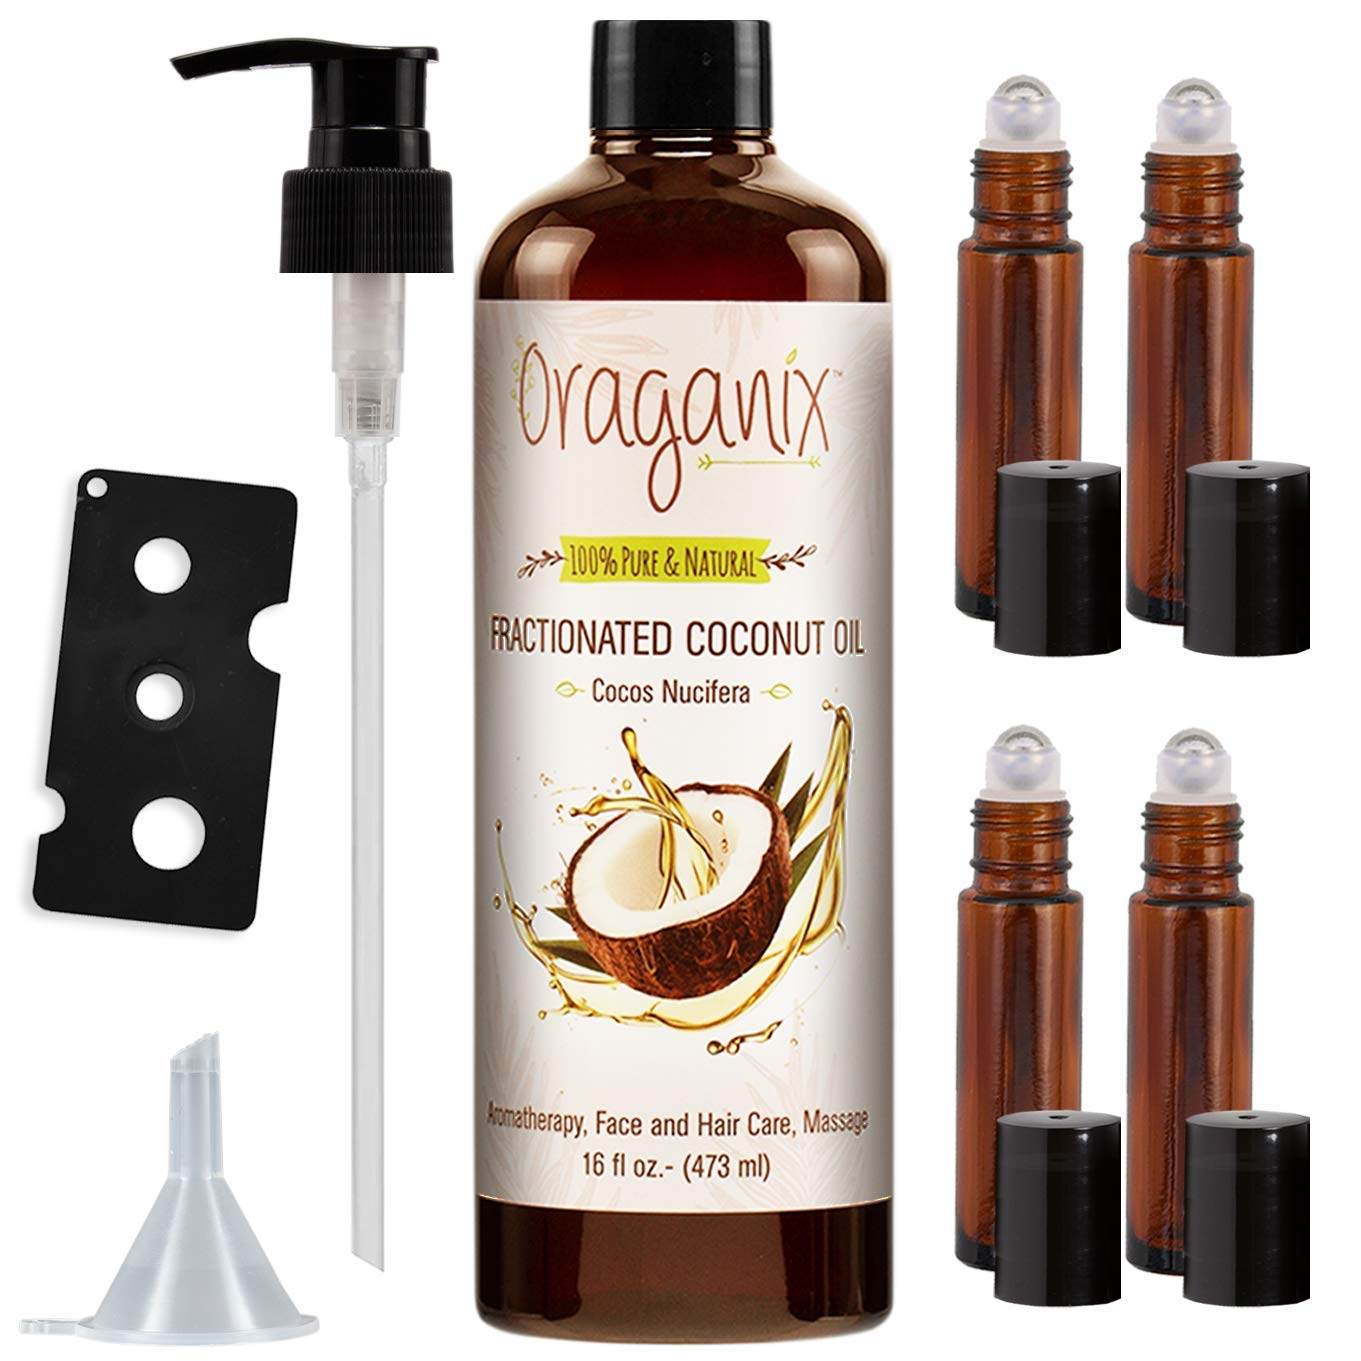 Oraganix Fractionated Coconut Oil with Roller Bottles -  100% Pure Natural 16 Oz Coconut Oil, 2ml Essential Oil Roller Bottles, Caps, Funnel and Bottle Opener - for Massage Oil, Skin and Hair Care